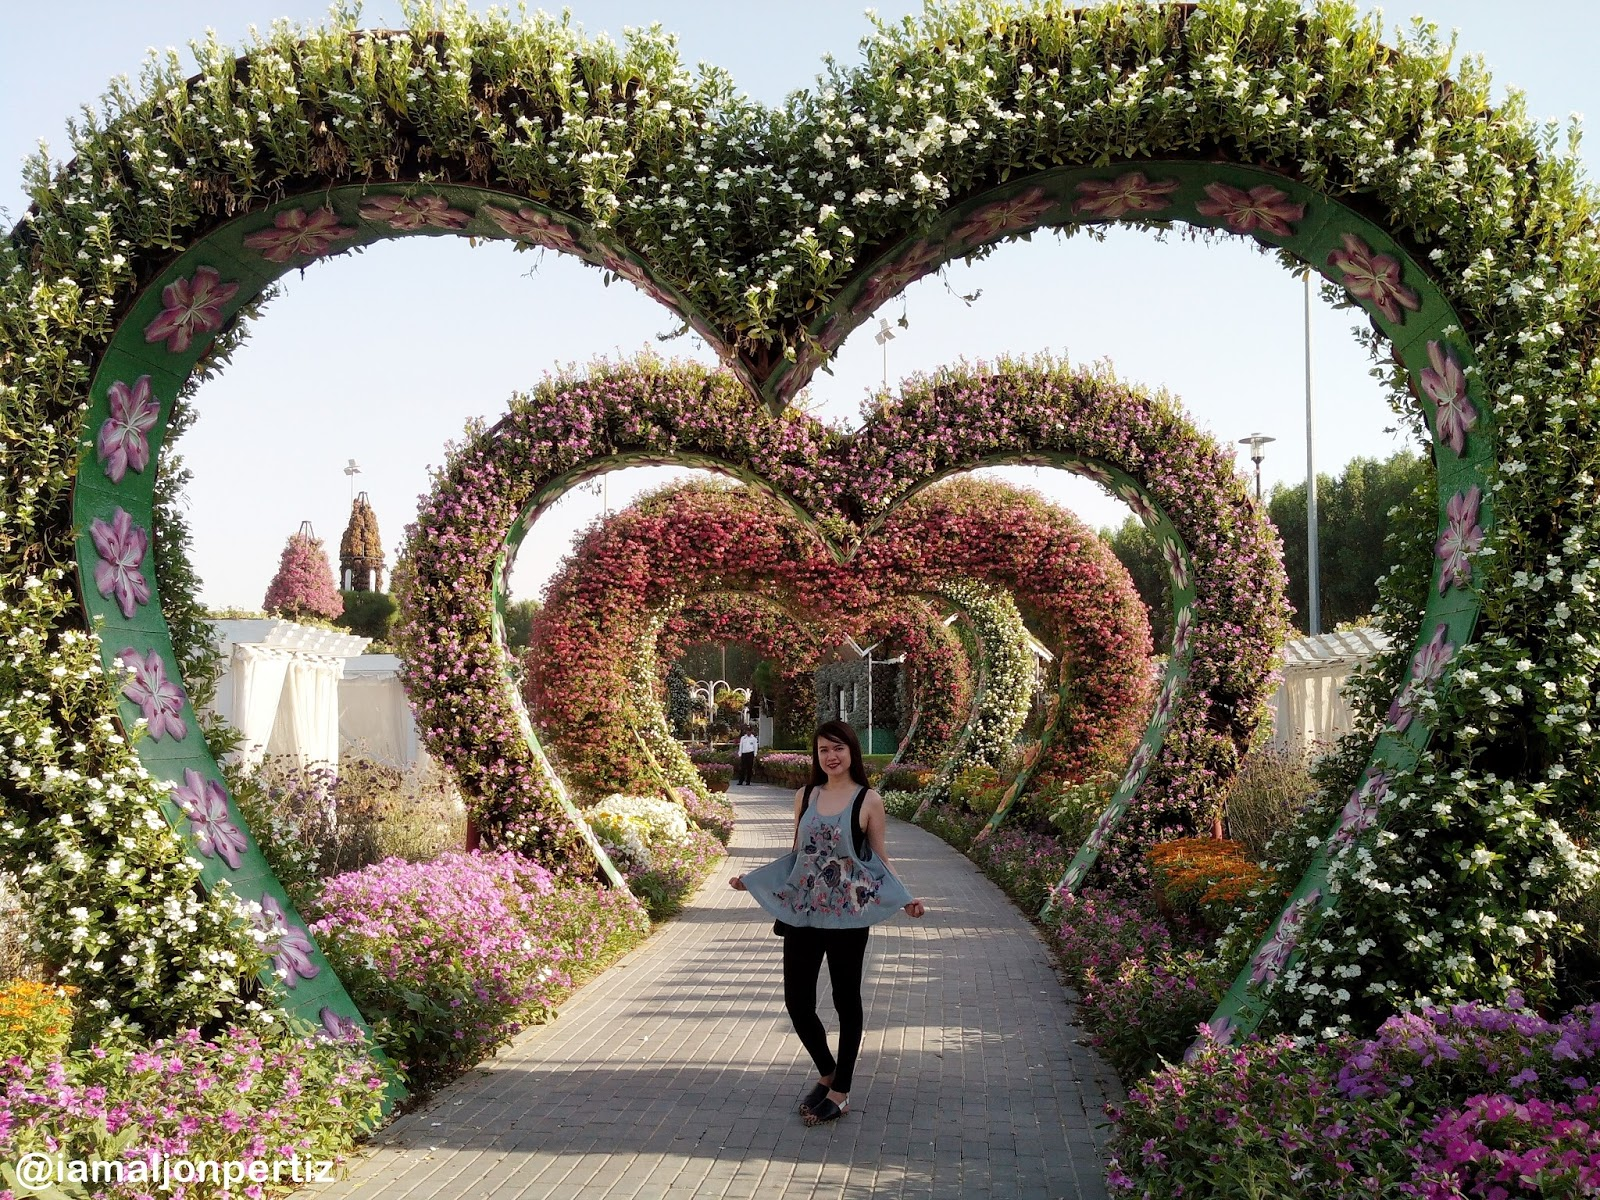 Dubai Miracle Garden: A Paradise in the Desert |I am Aljon Pertiz